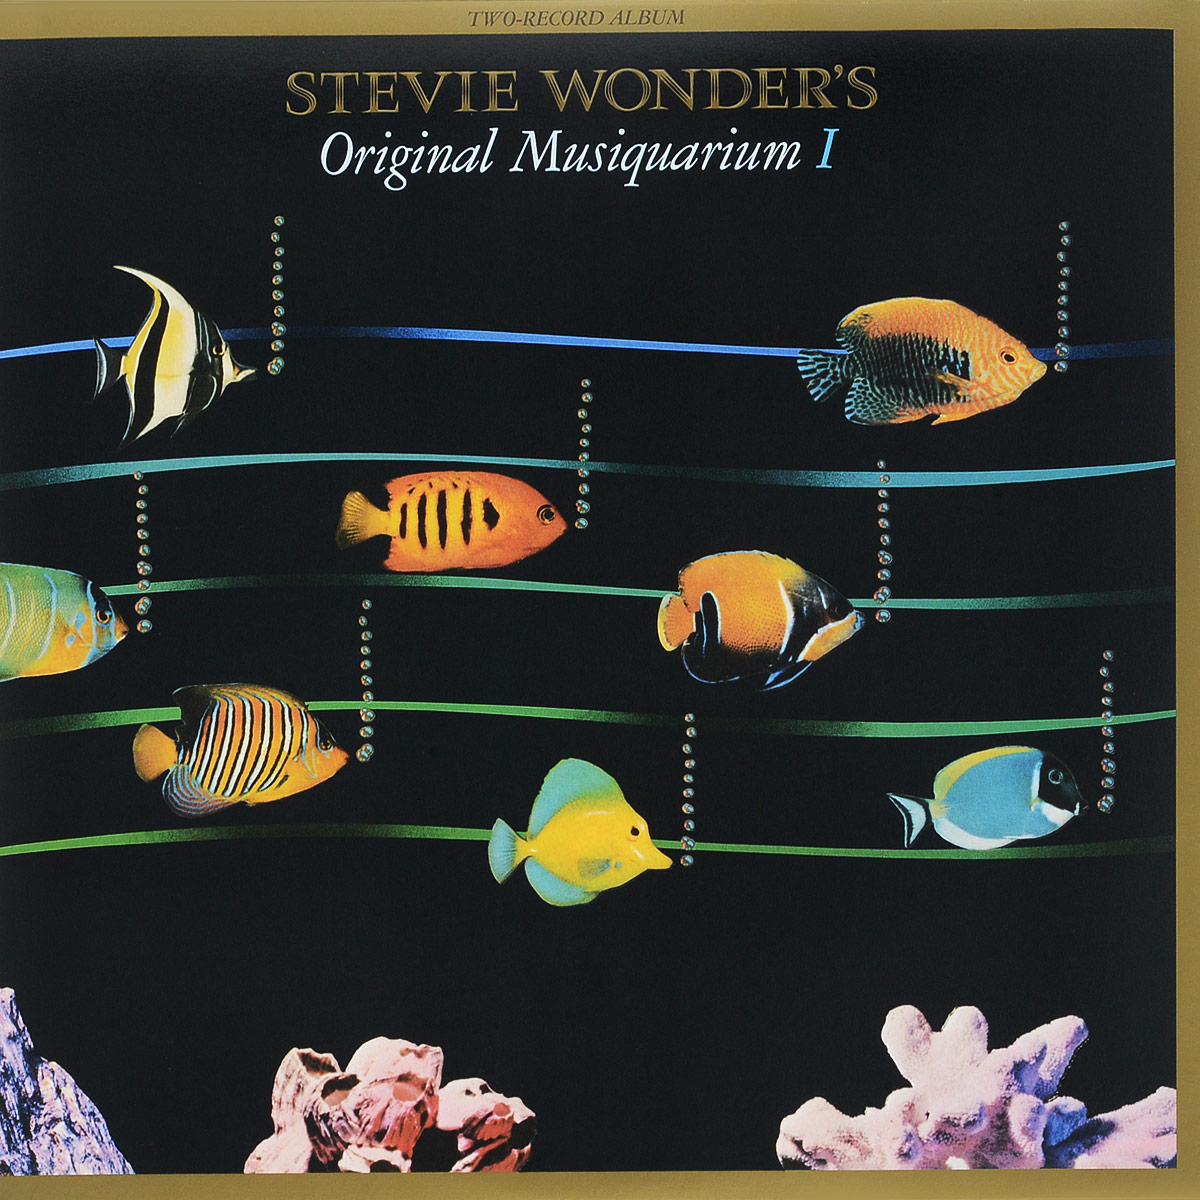 Стиви Уандер Stevie Wonder. Original Musiquarium I (2 LP) стиви уандер stevie wonder the definitive collection